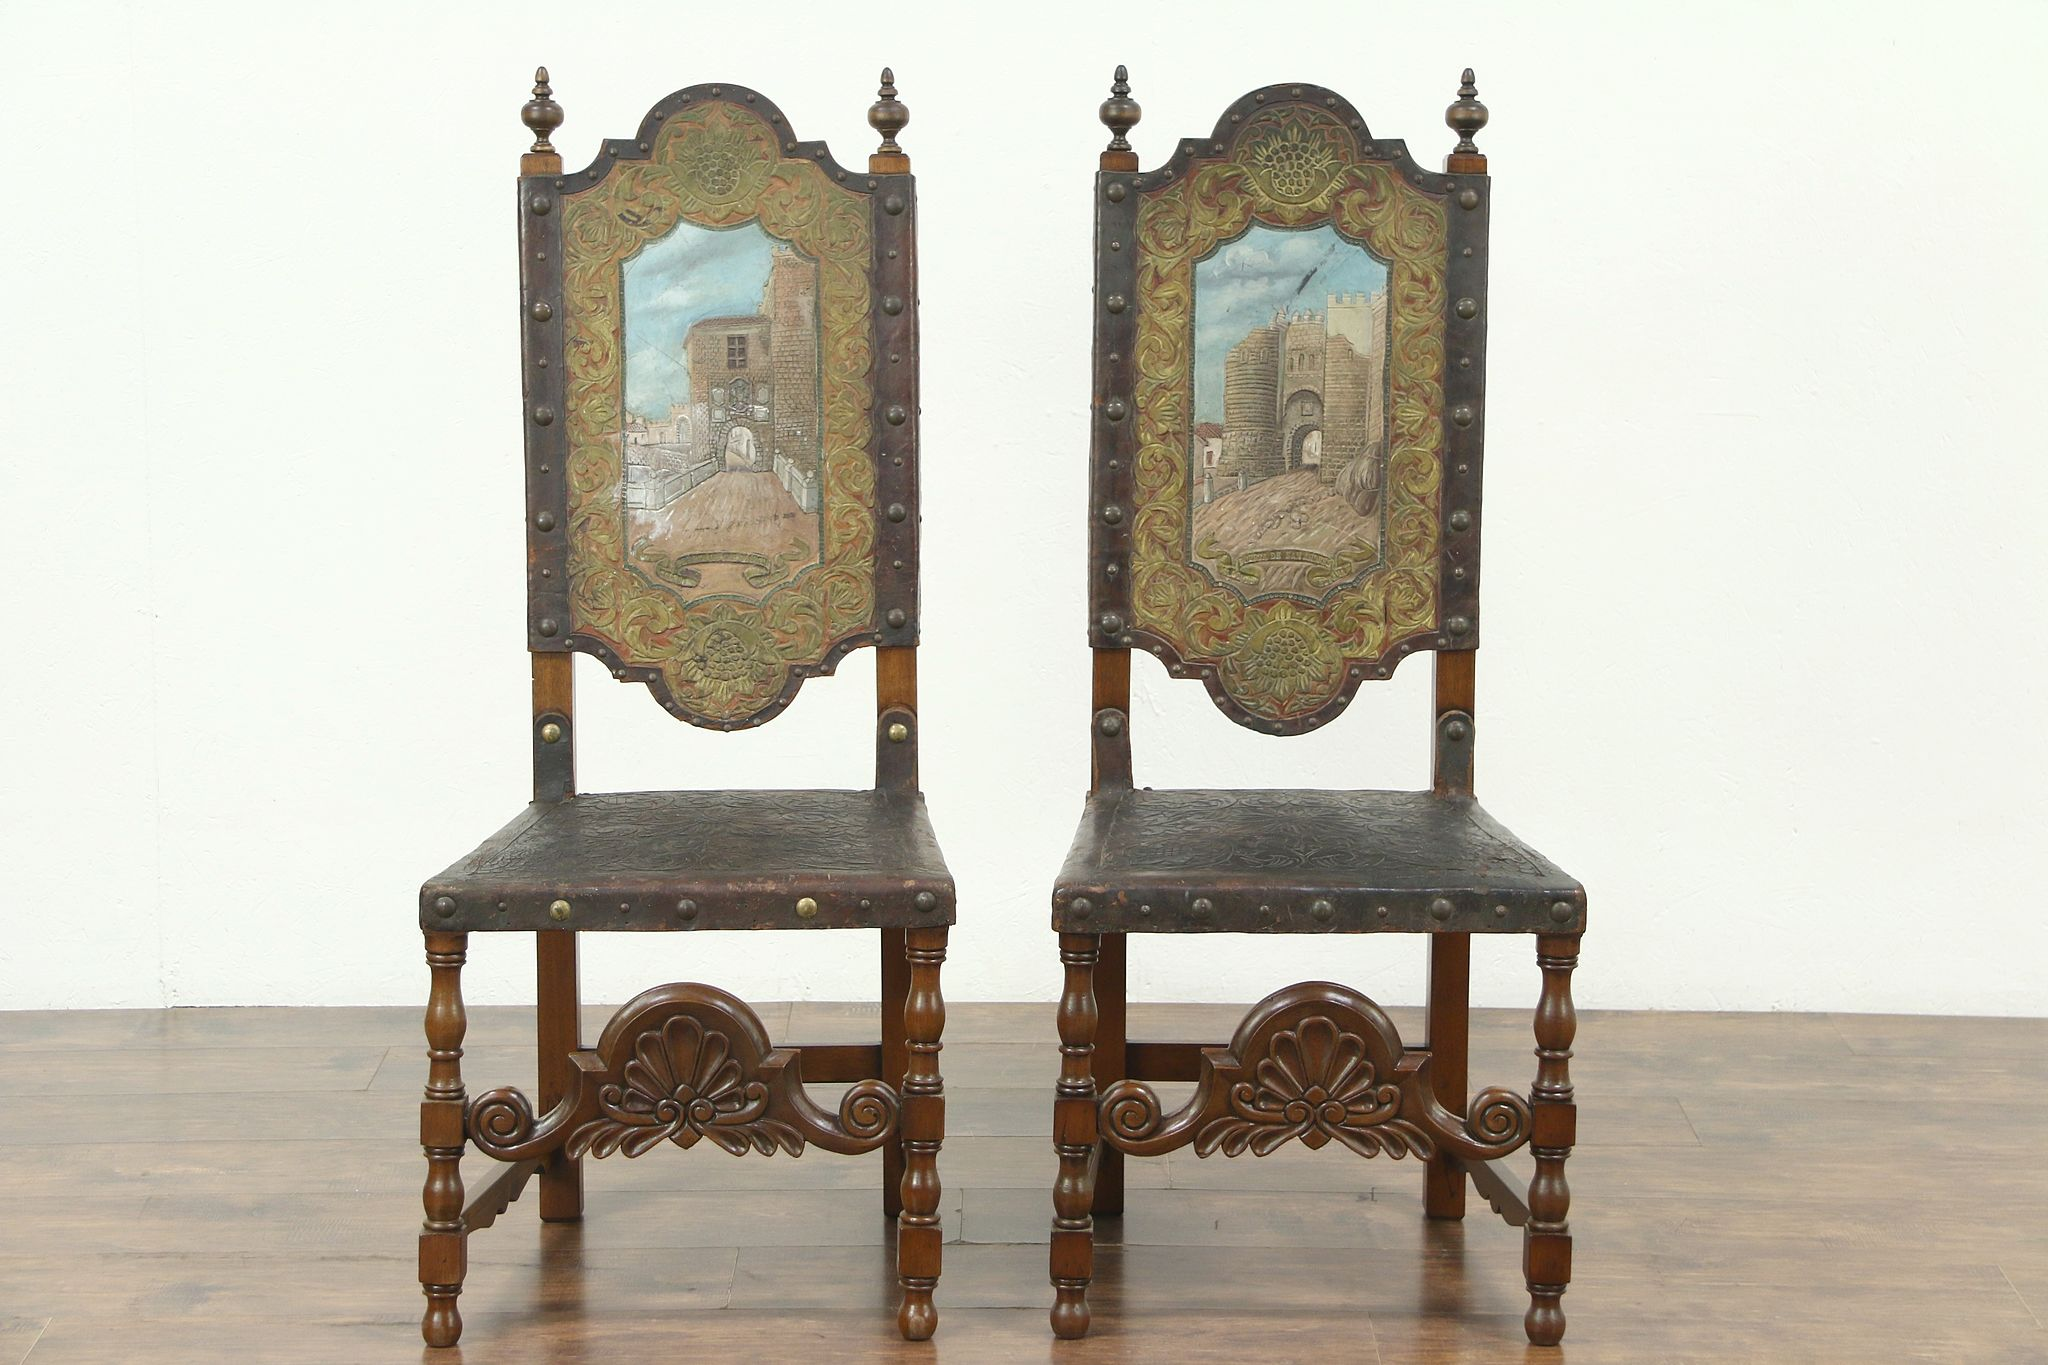 Genial Pair Antique Leather Chairs, Hand Painted Gates Toledo U0026 Segovia Spain  #28754 ...